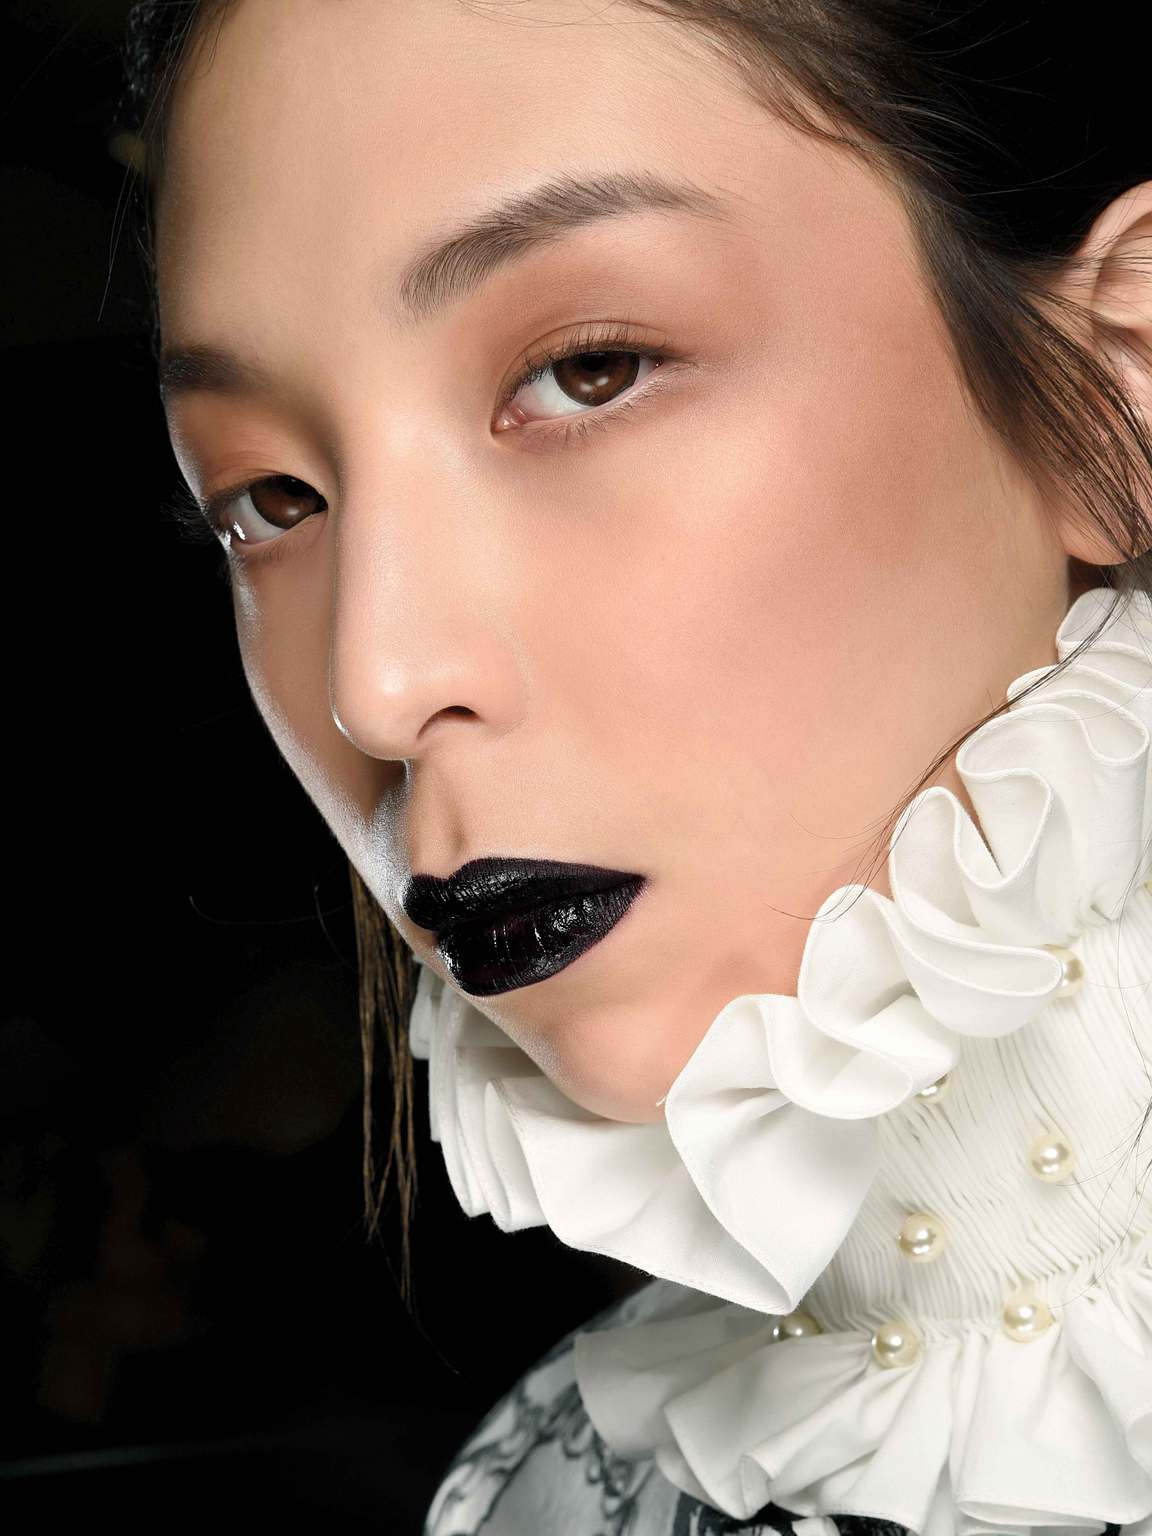 Hair, makeup and nail trends autumn/winter 2015: Beauty and the beast | The Independentindependent_brand_ident_LOGOUntitled